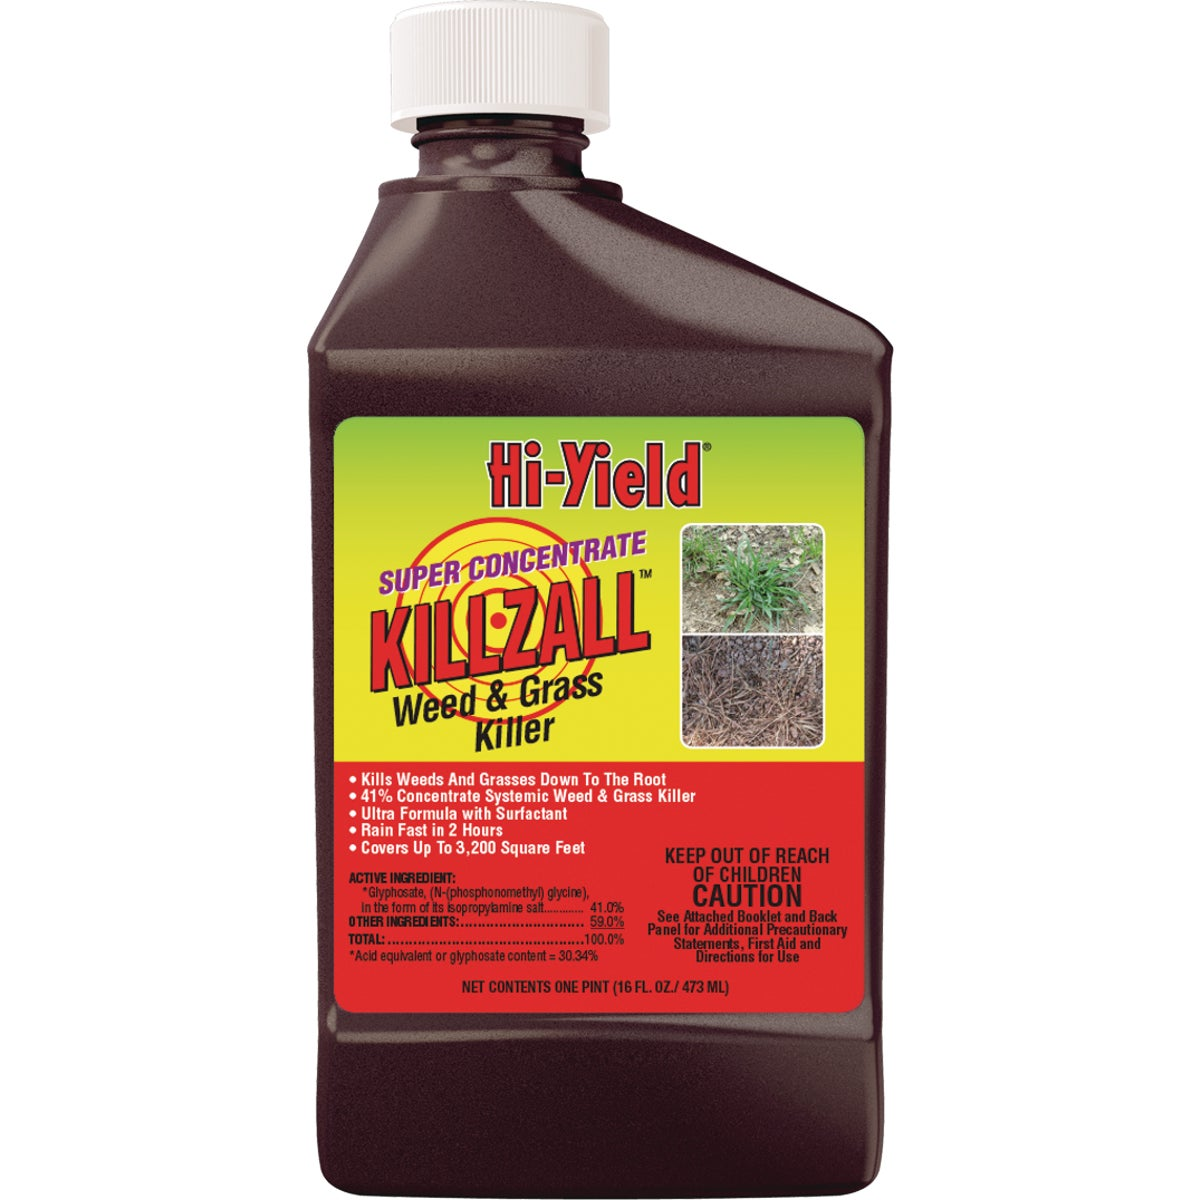 16OZ WD & GRASS KILLER - 33691 by Vpg Fertilome